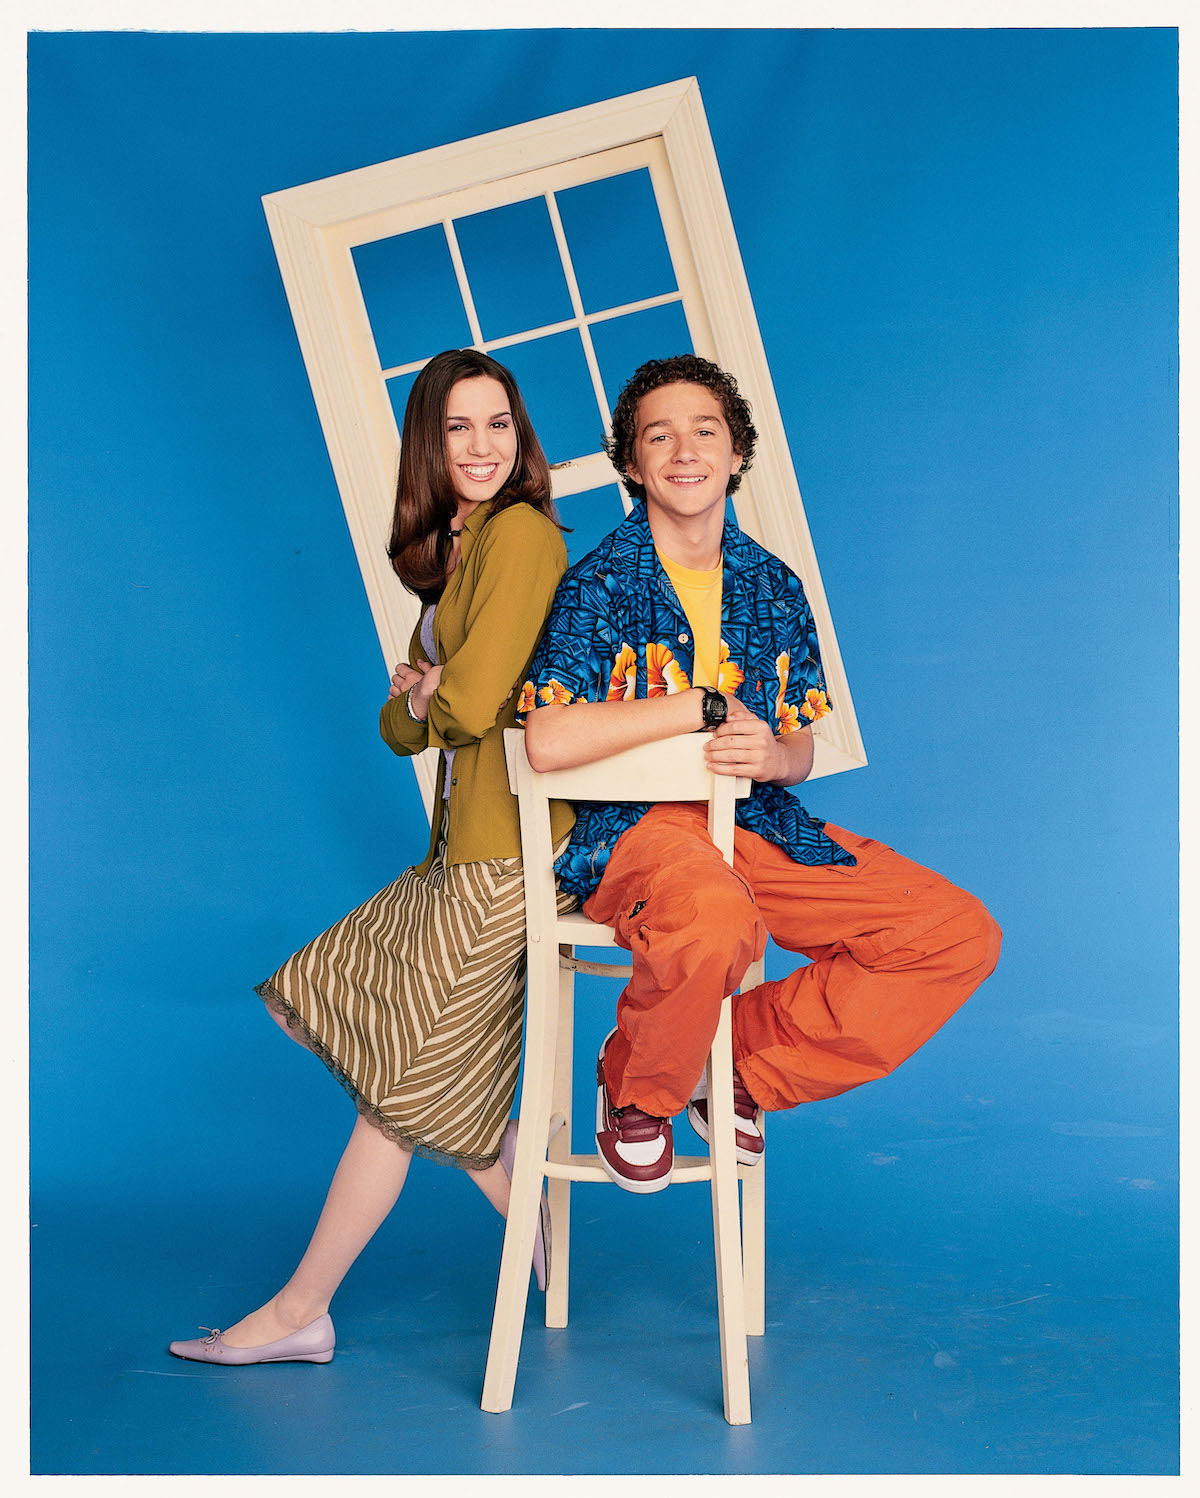 Christy Carlson Romano and Shia LeBeouf in promotional shot